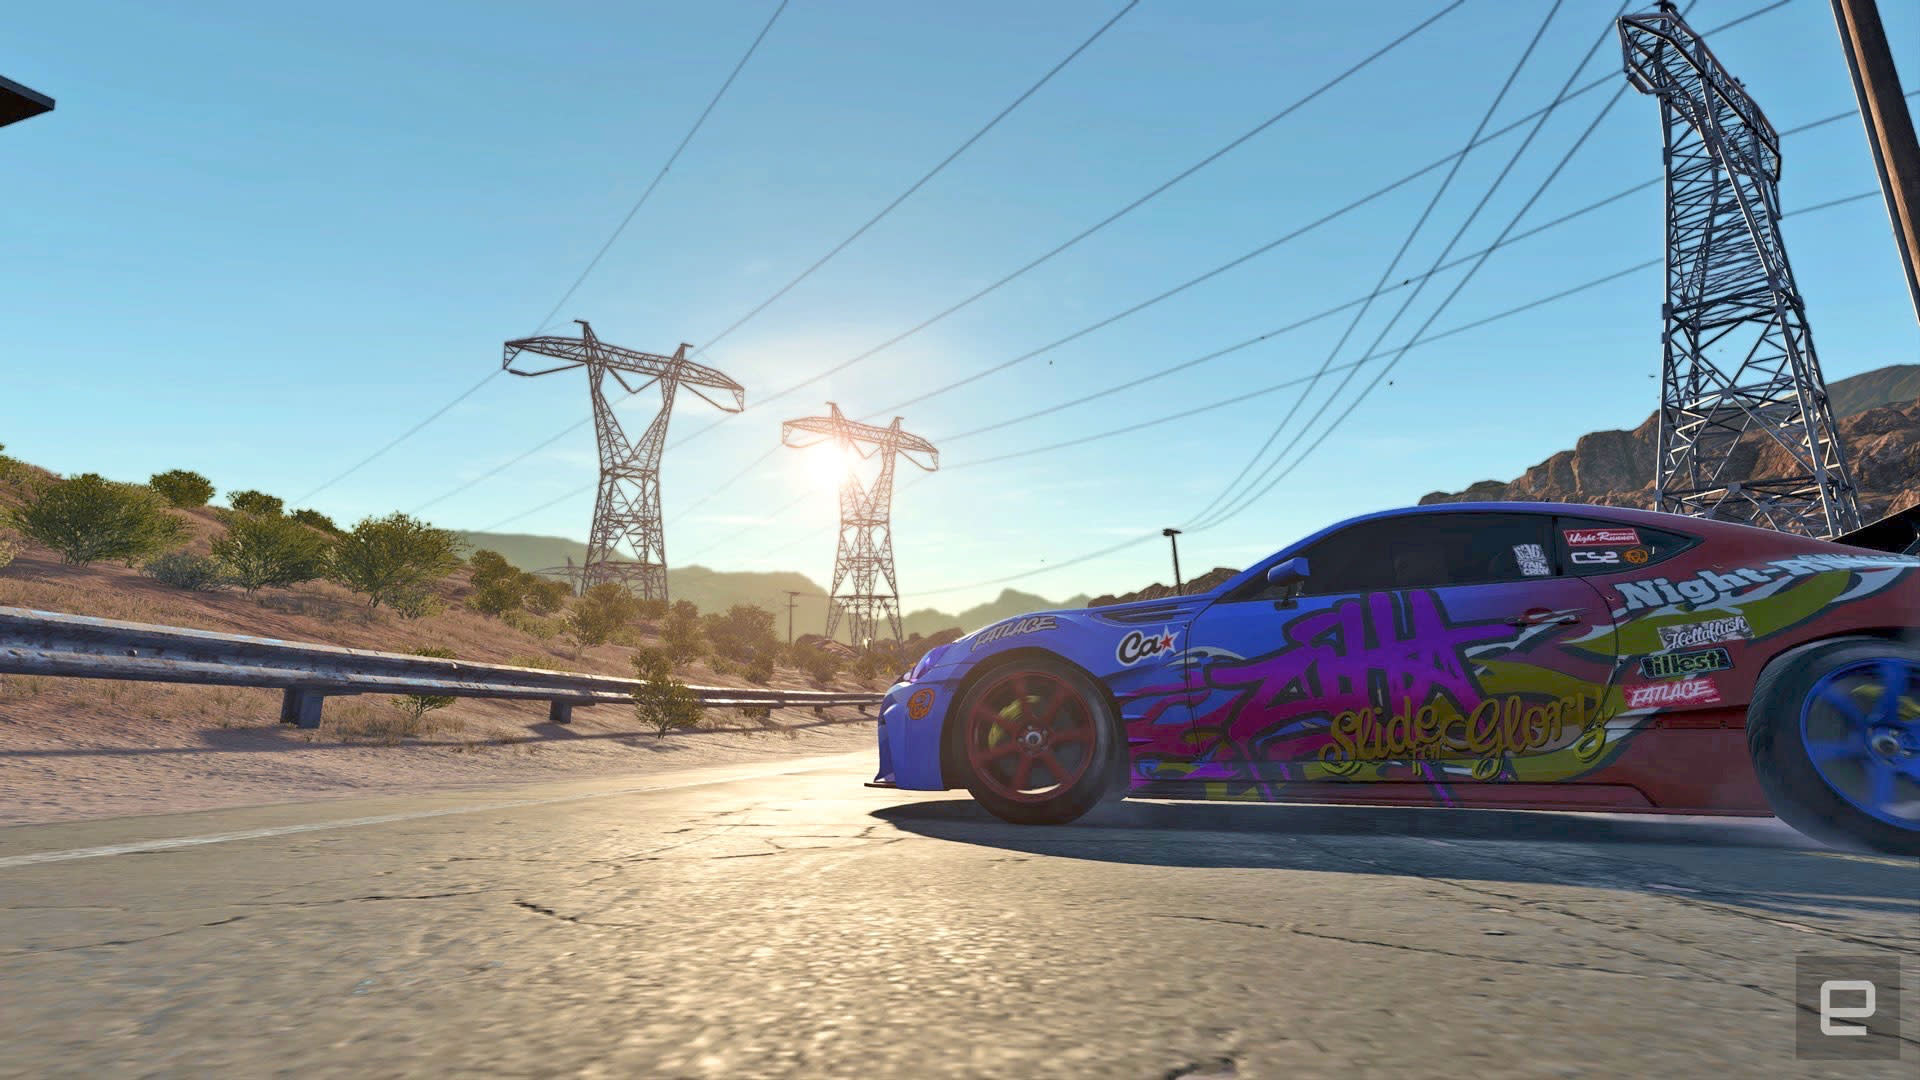 download save nfs payback ps4